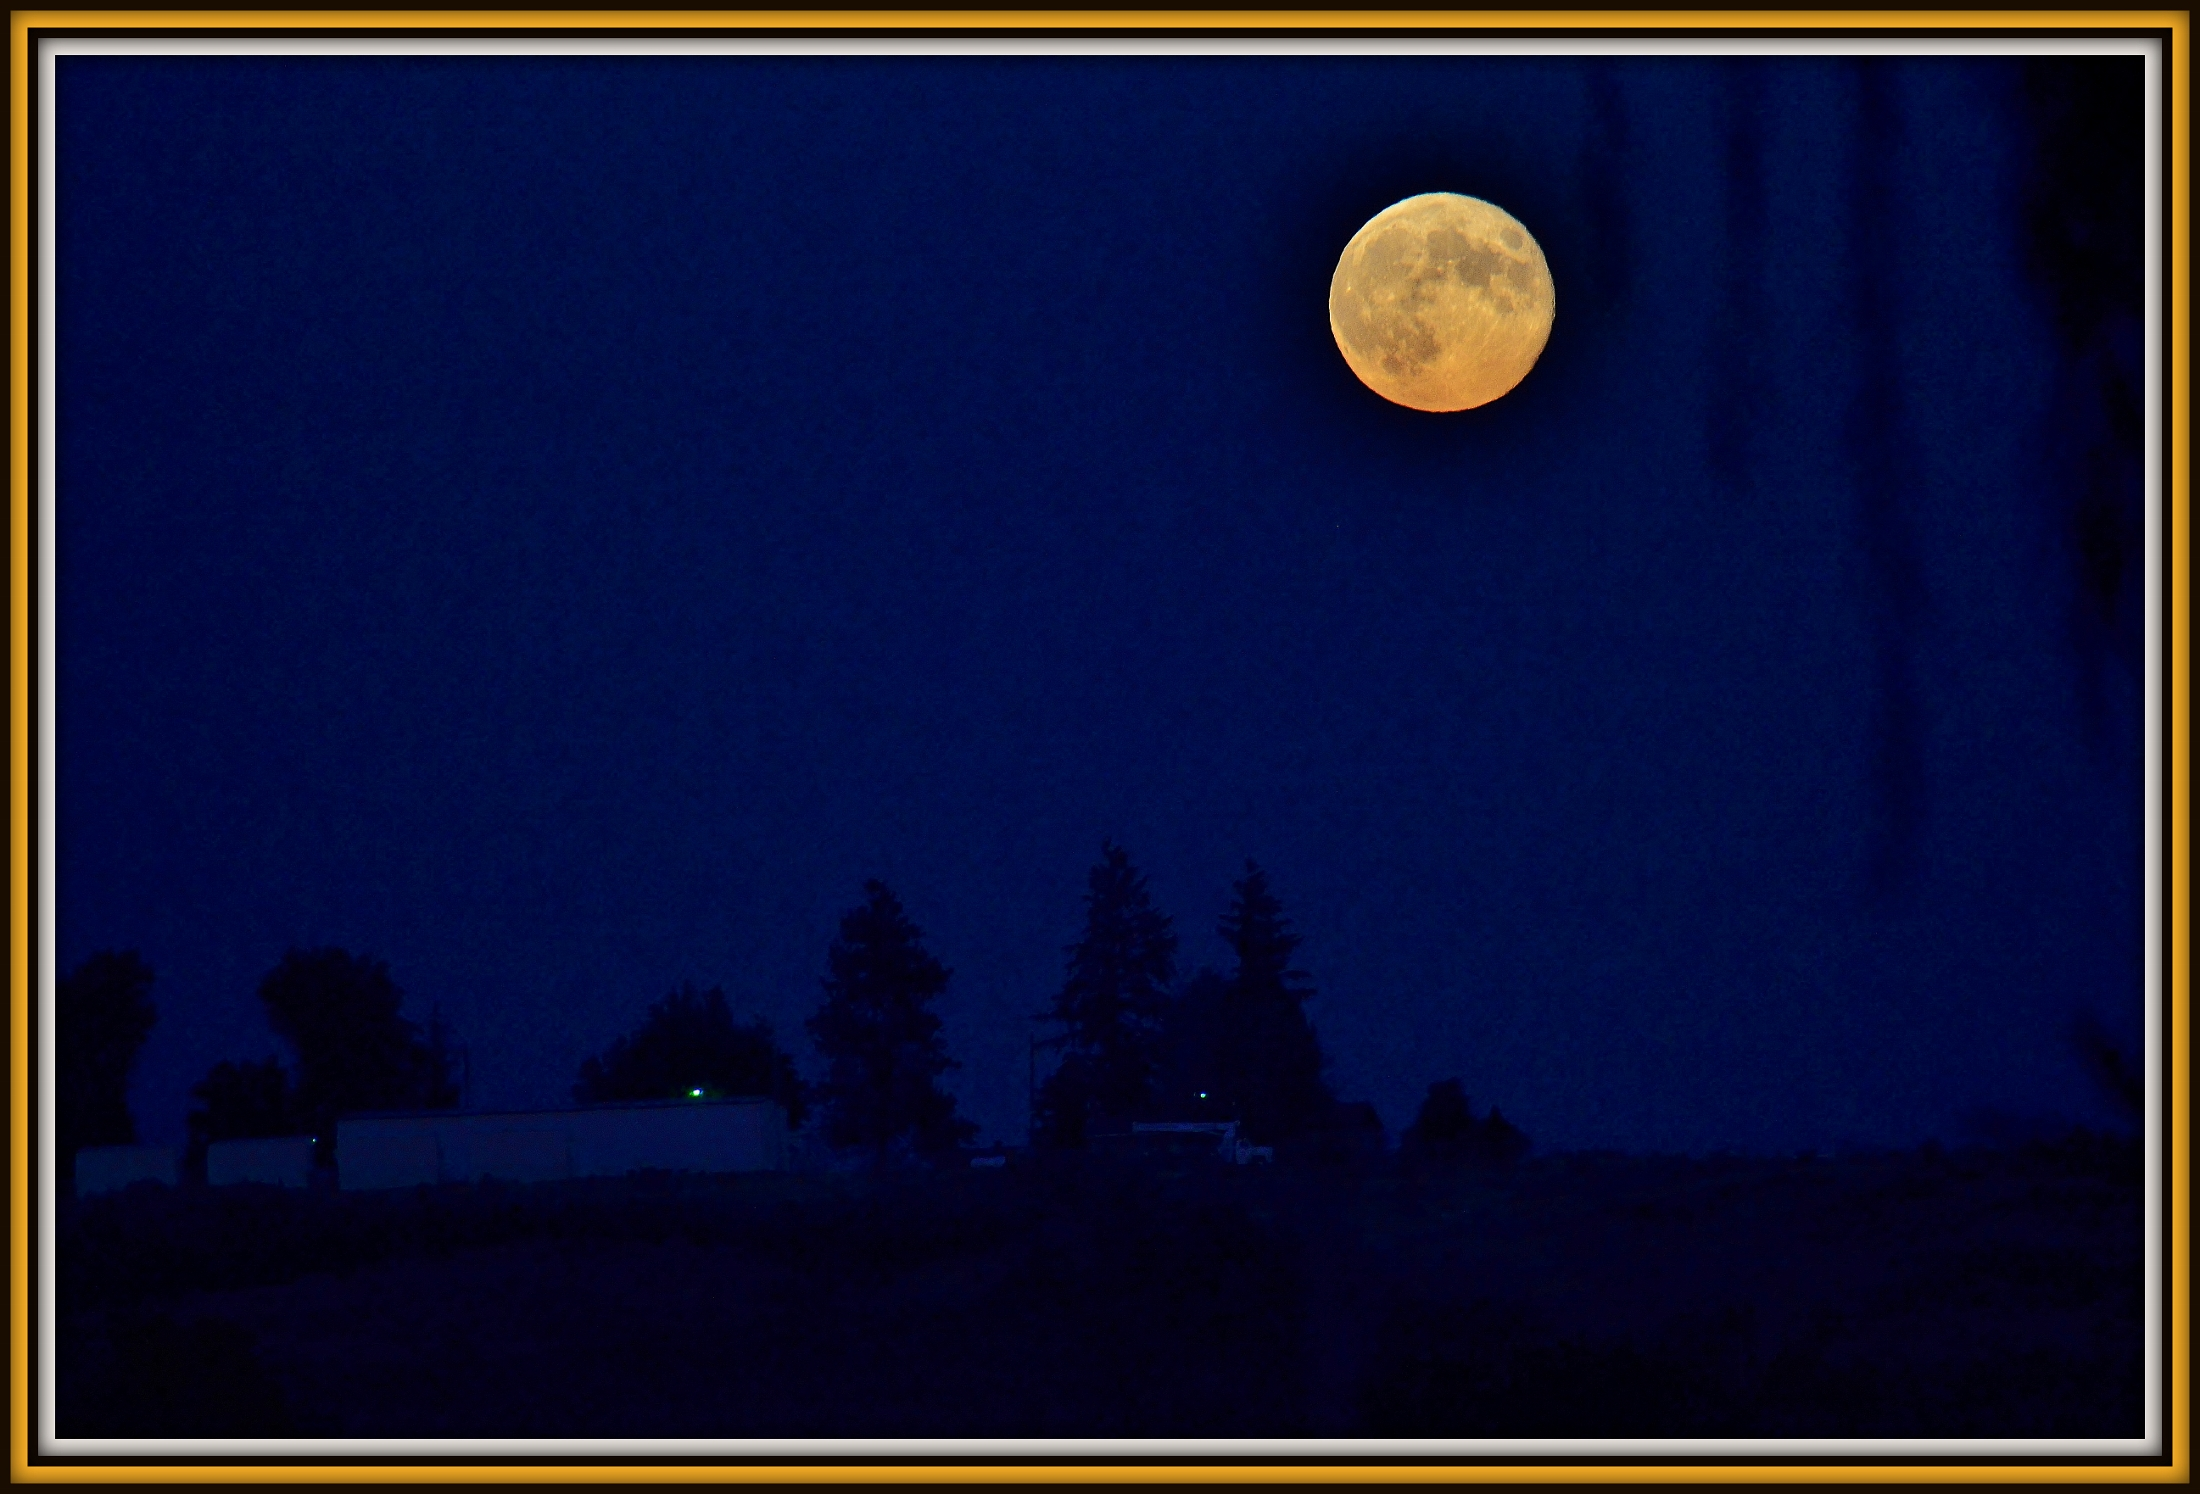 Post your Moon and Star shots-harvest-moon-2nd-nite.jpg